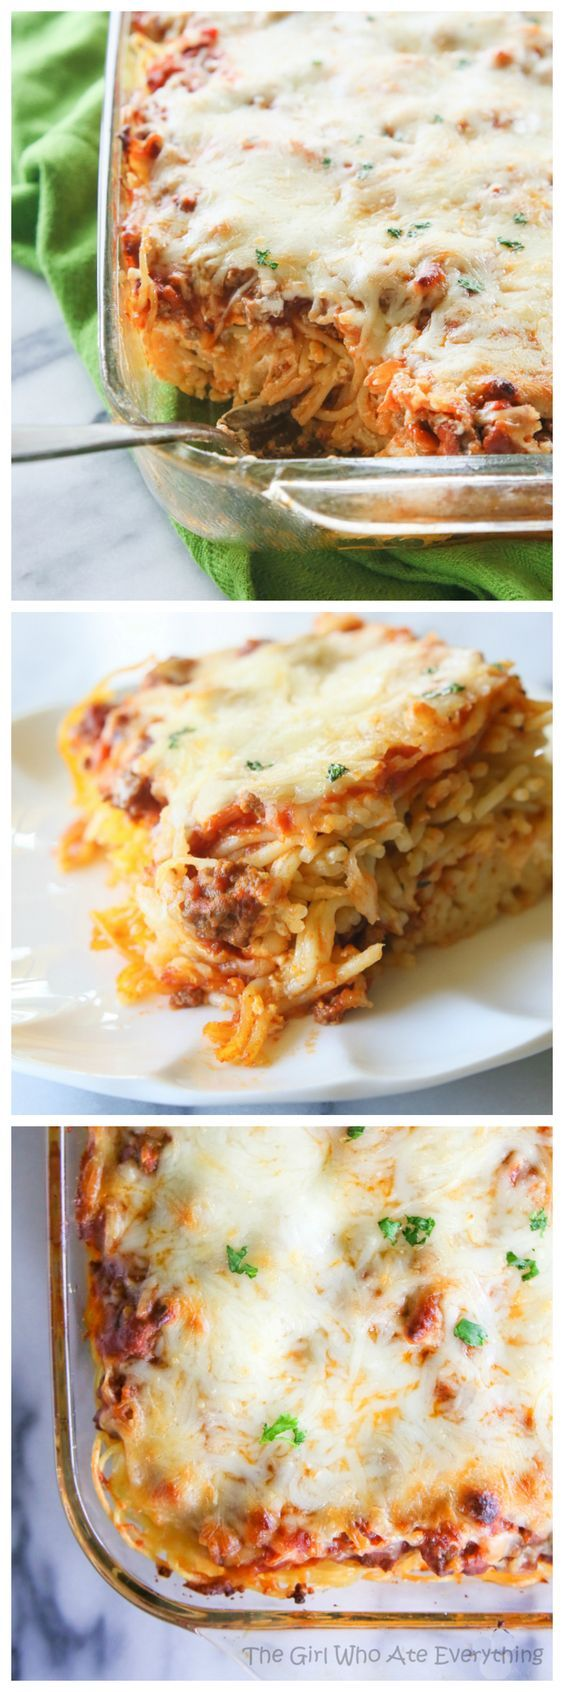 Baked Spaghetti - a dressed up version of spaghetti nice enough to take in to a family and still kid friendly.: